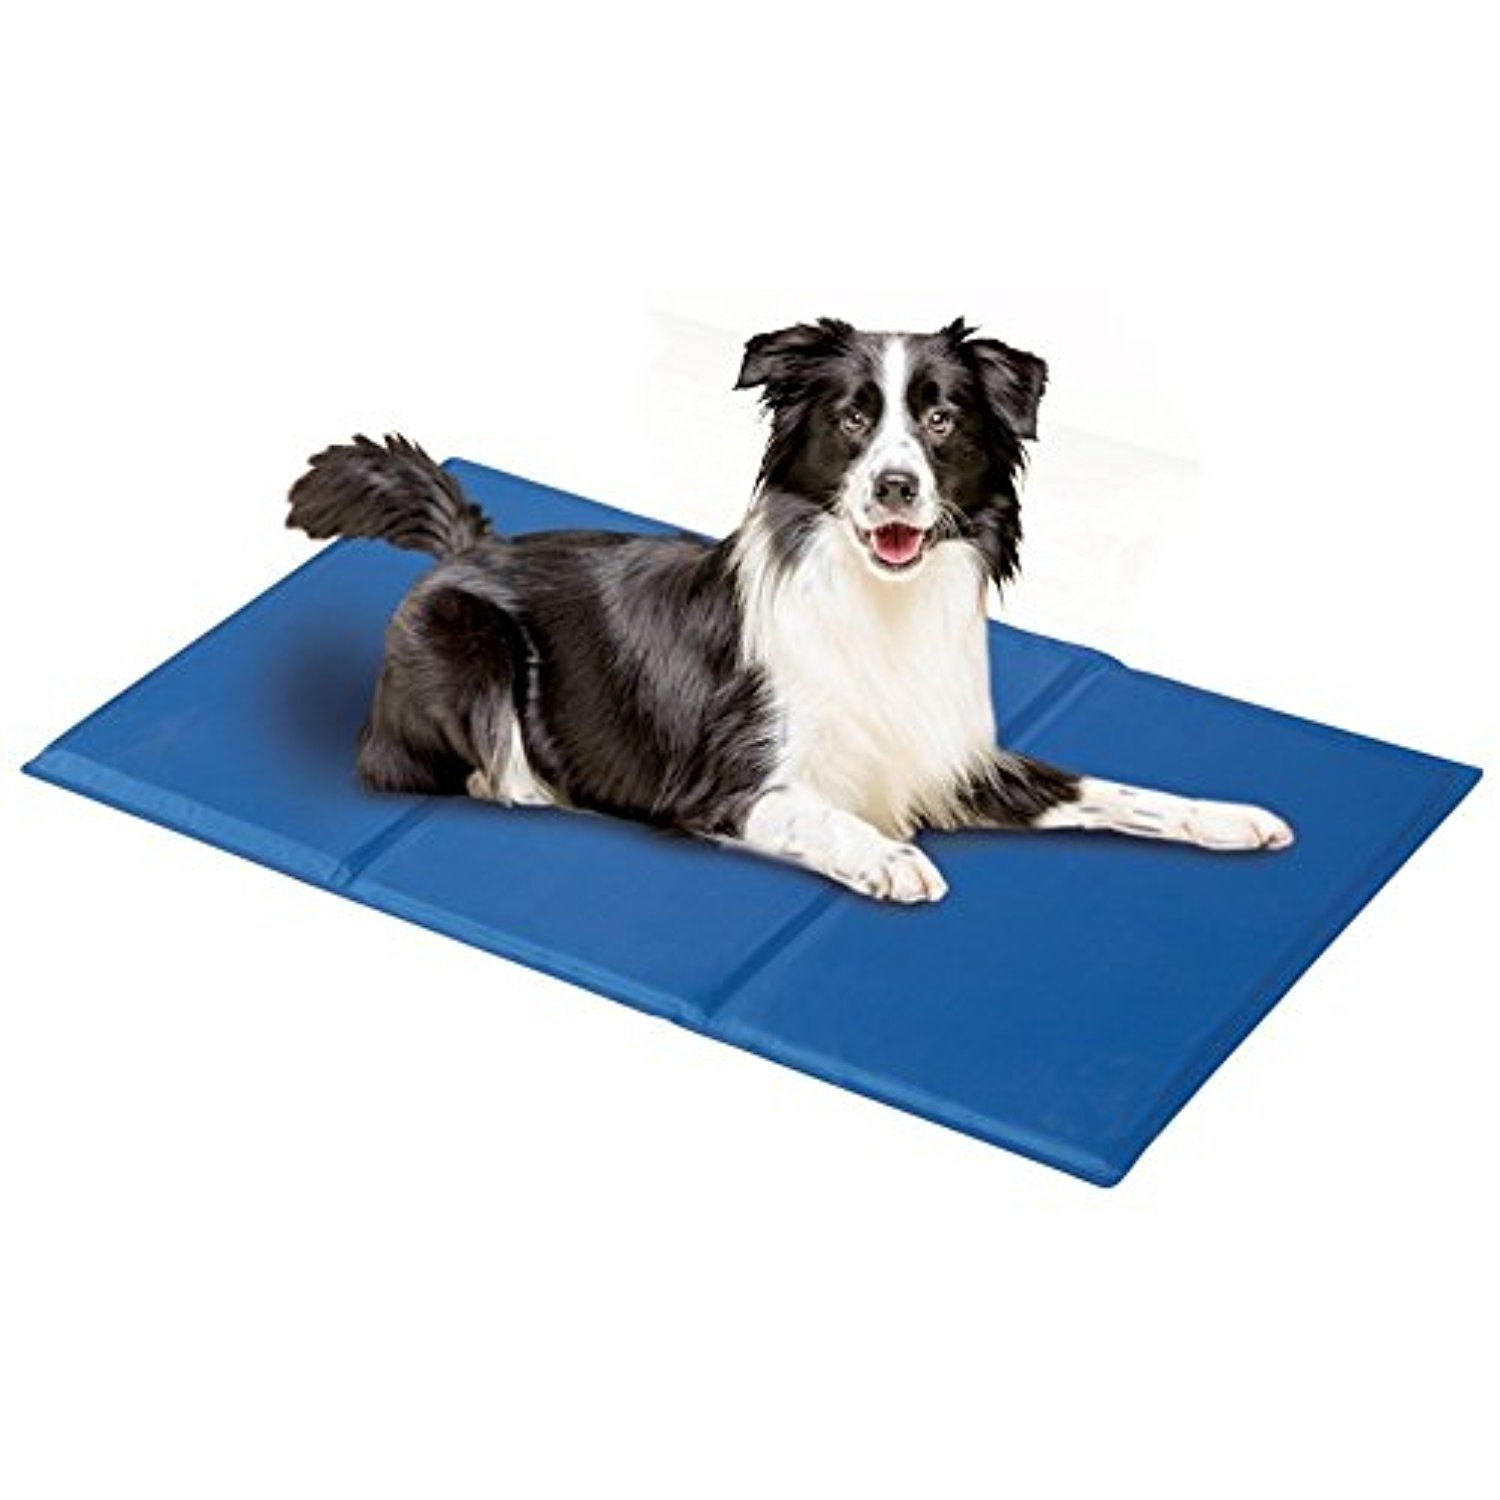 dp pet bed mats supplies inch by dogs ethical large for amazon com cooling